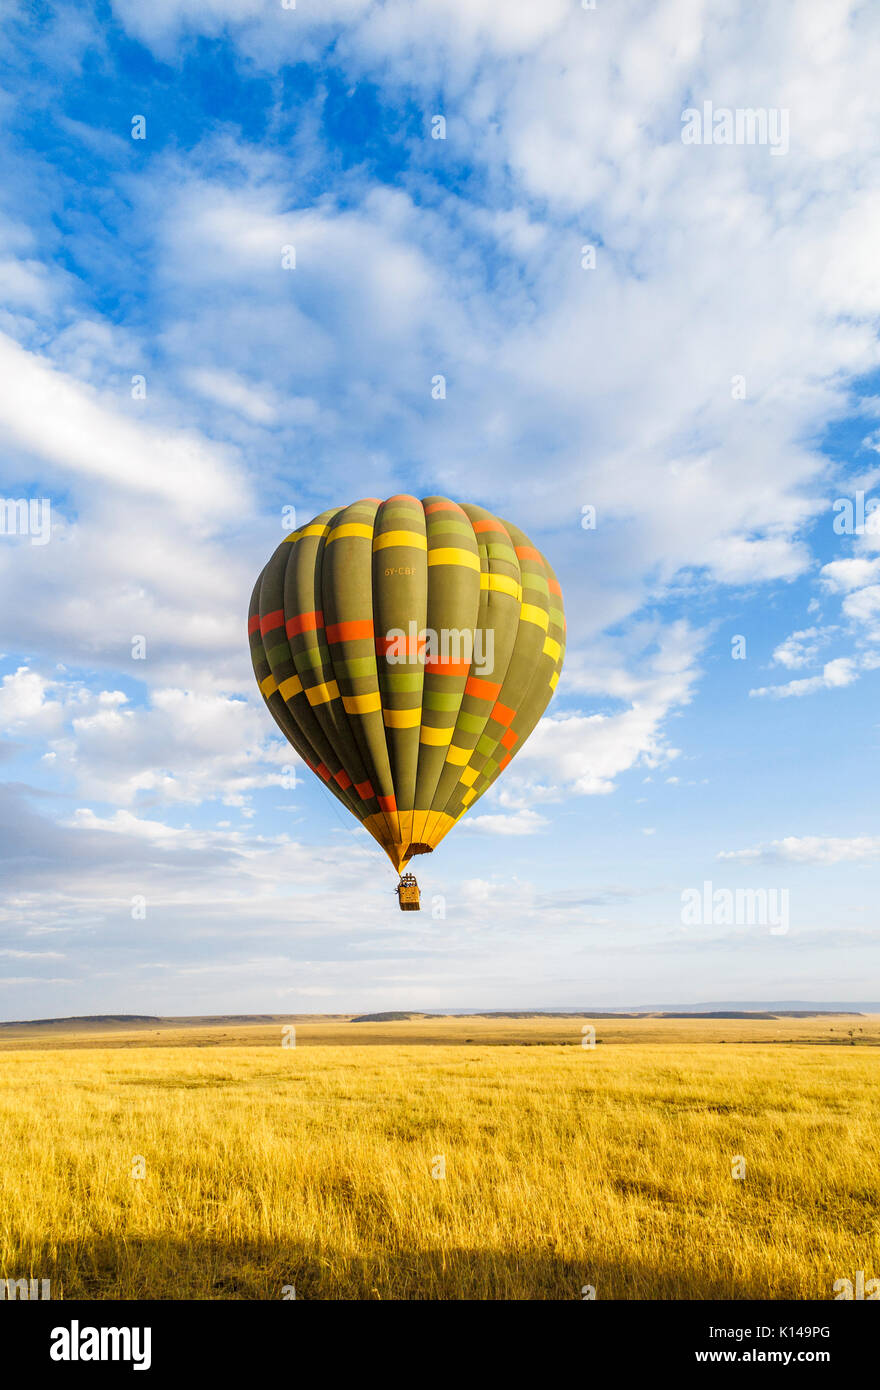 Early morning sightseeing and safari game viewing by colourful green hot-air balloon over the savannah plain in Masai Mara, Kenya - Stock Image